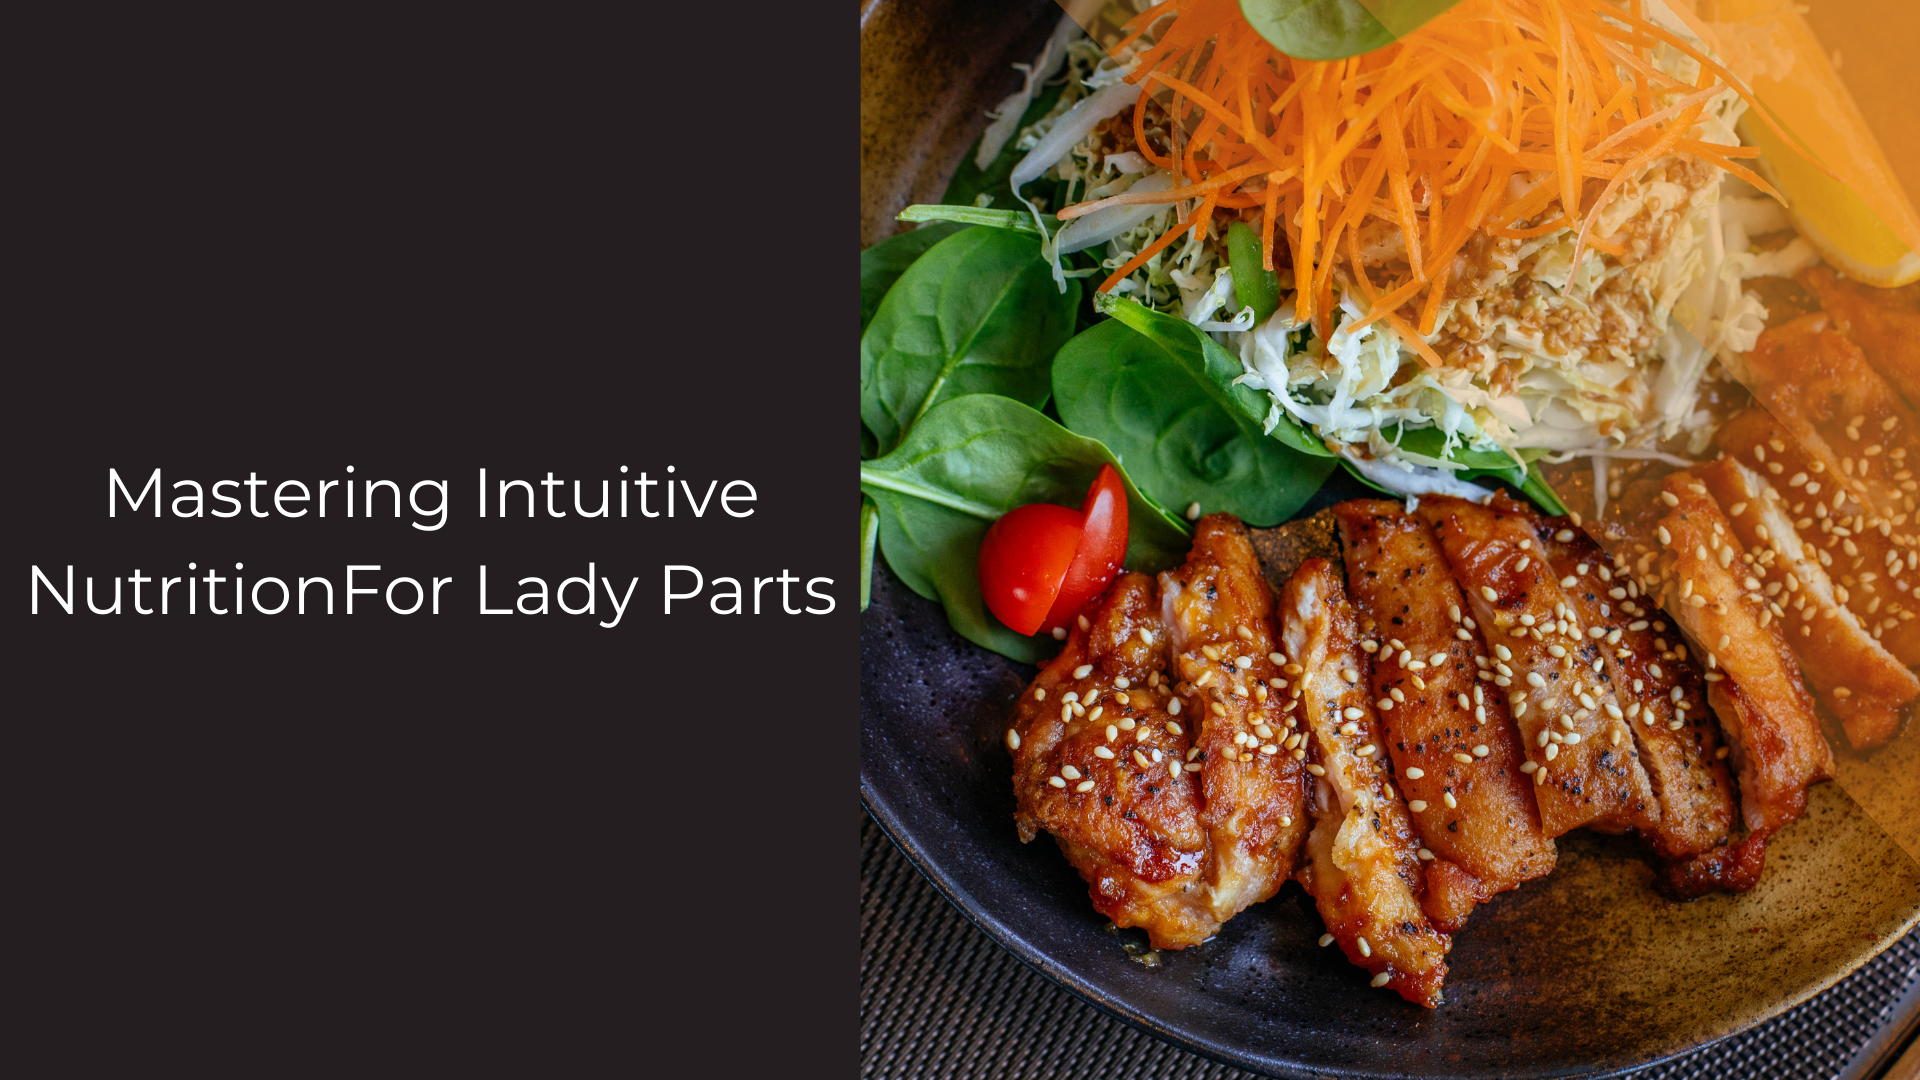 Mastering Intuitive Nutrition For Lady Parts